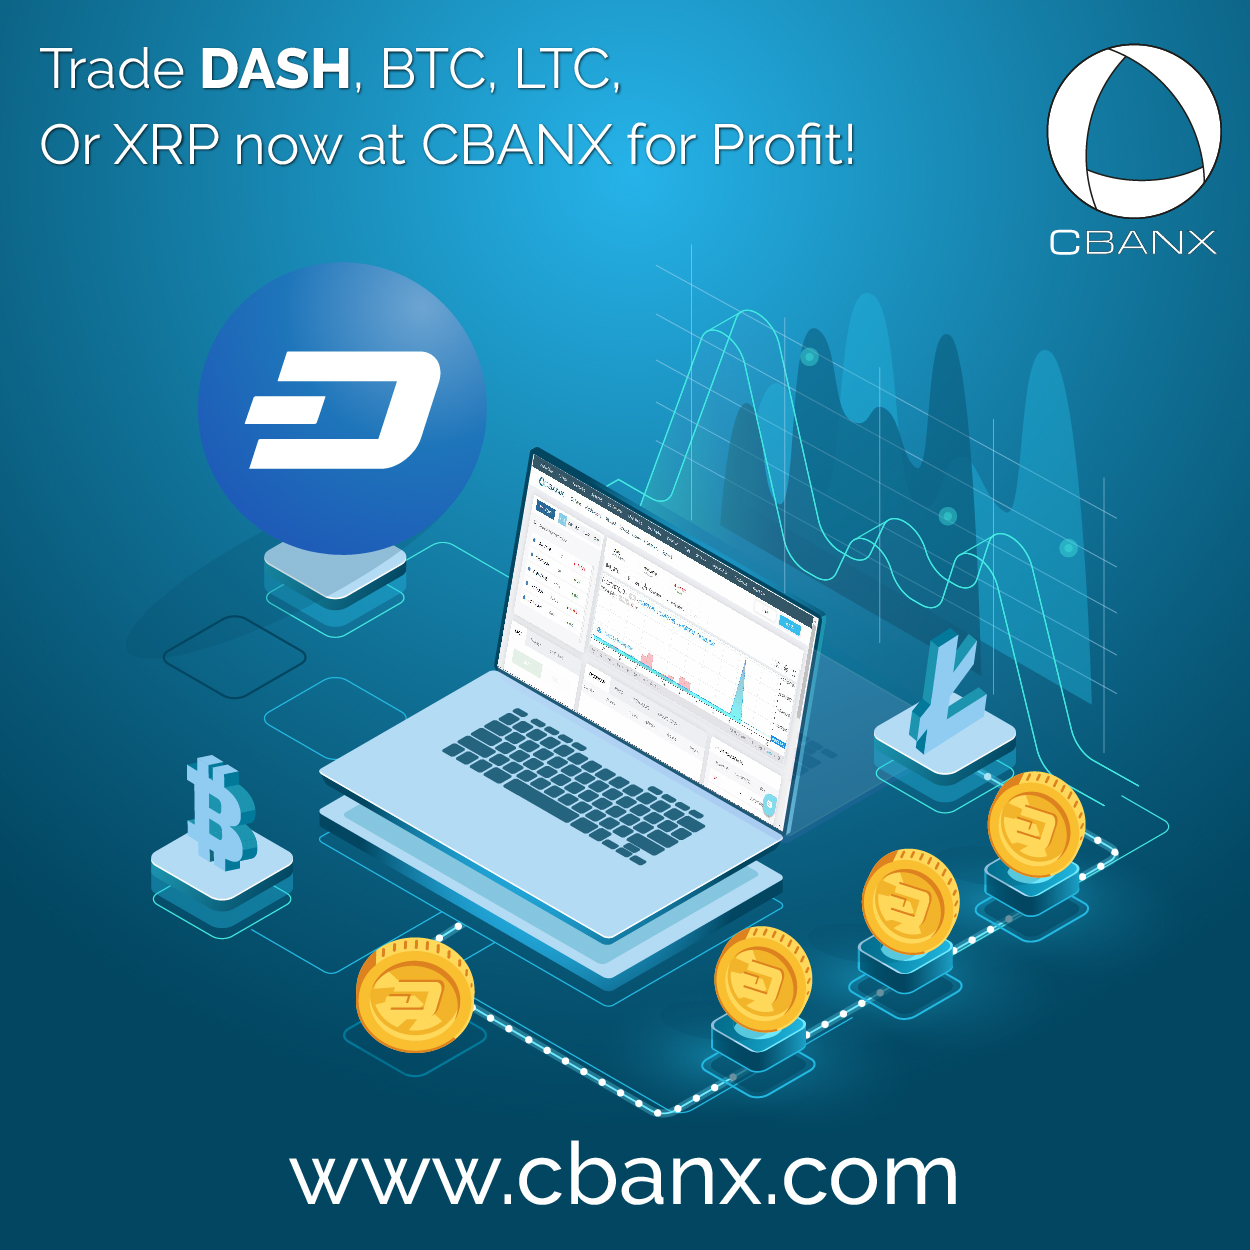 Trade DASH, BTC, LTC, Or XRP now at CBANX for Profit!